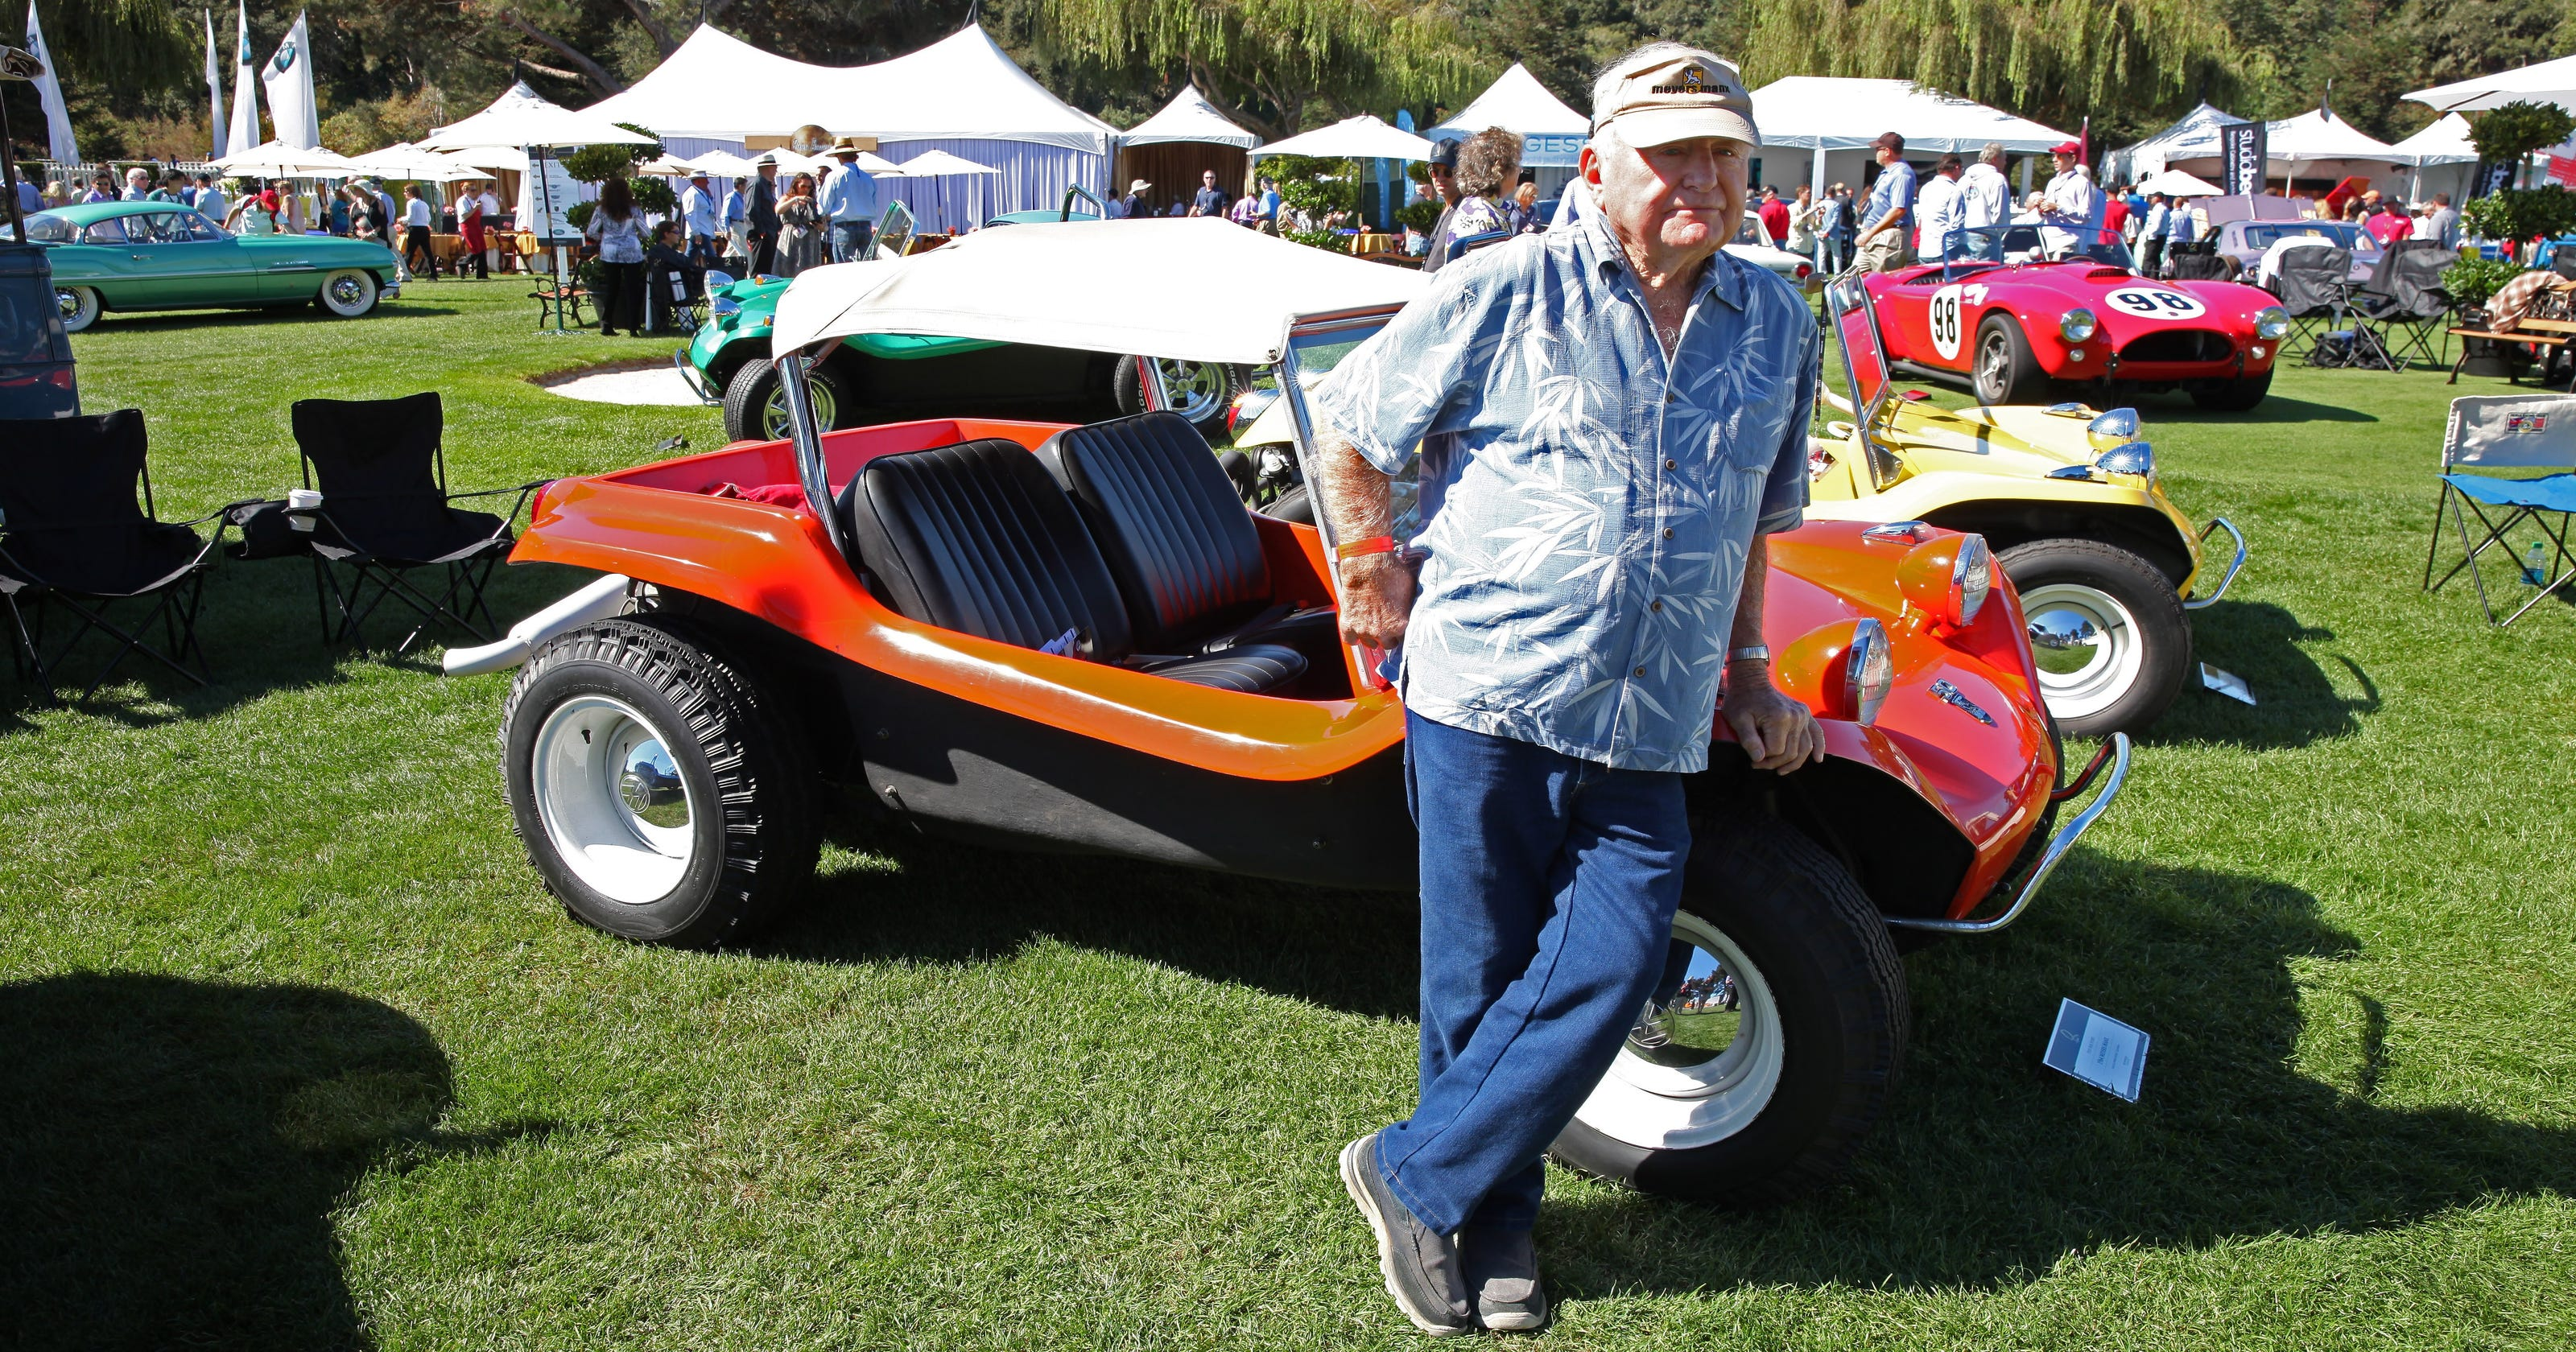 Just Cool Cars: Dune buggy began with '64 Meyers Manx